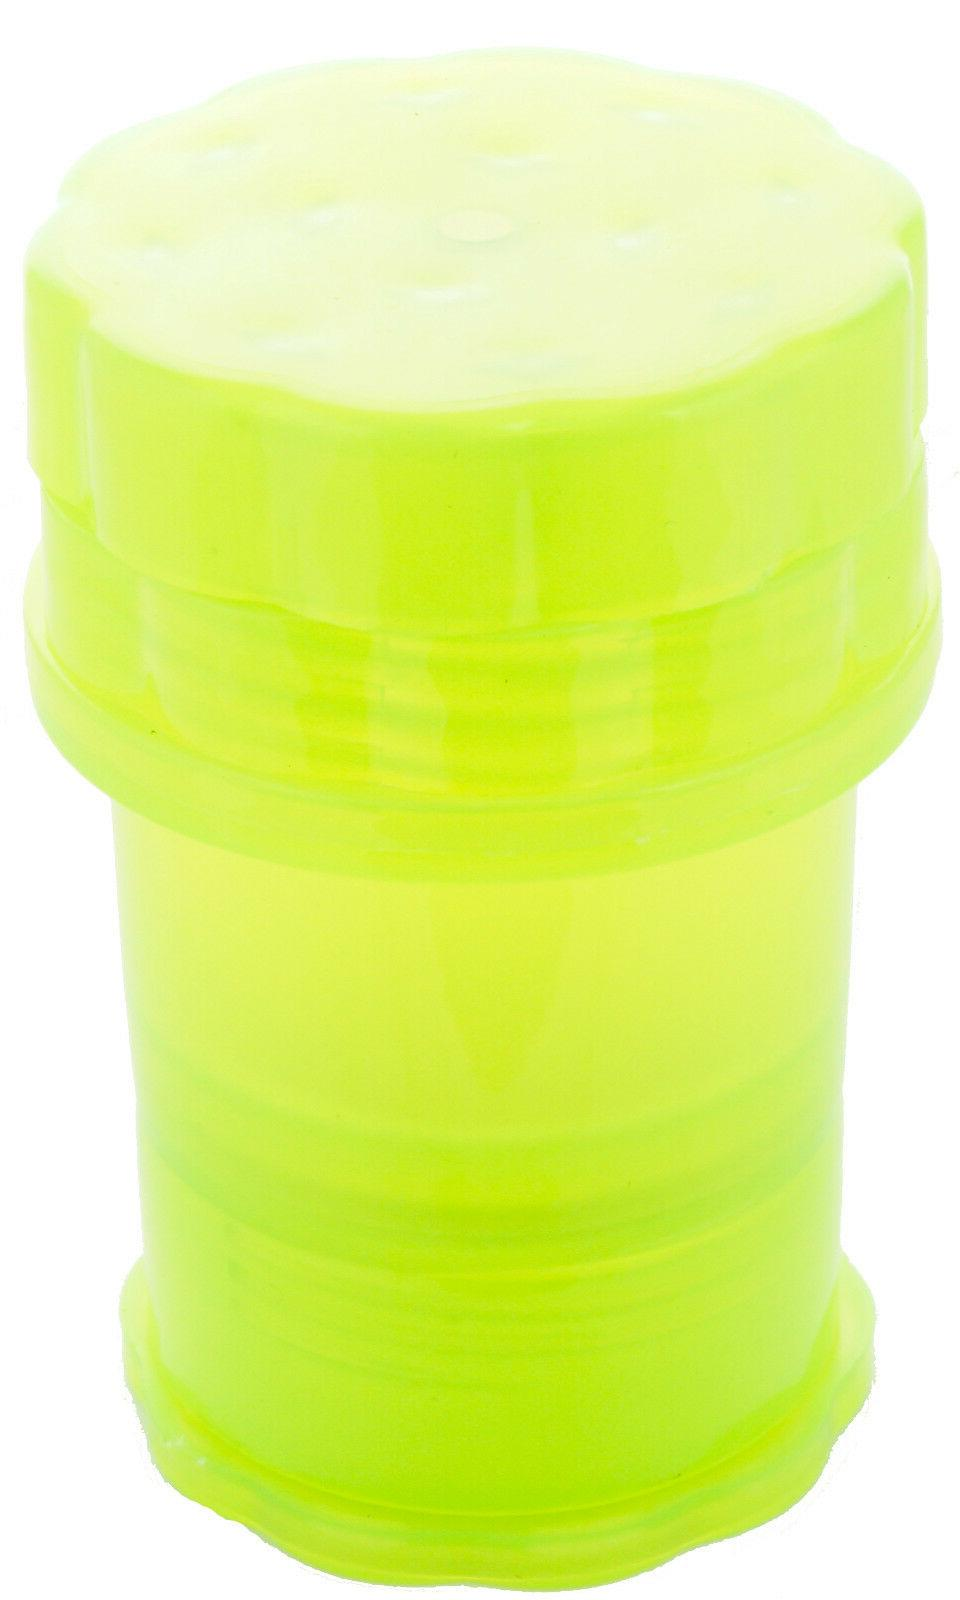 GRINDER herb saver container medtainer *HIGH QUALITY* # larg